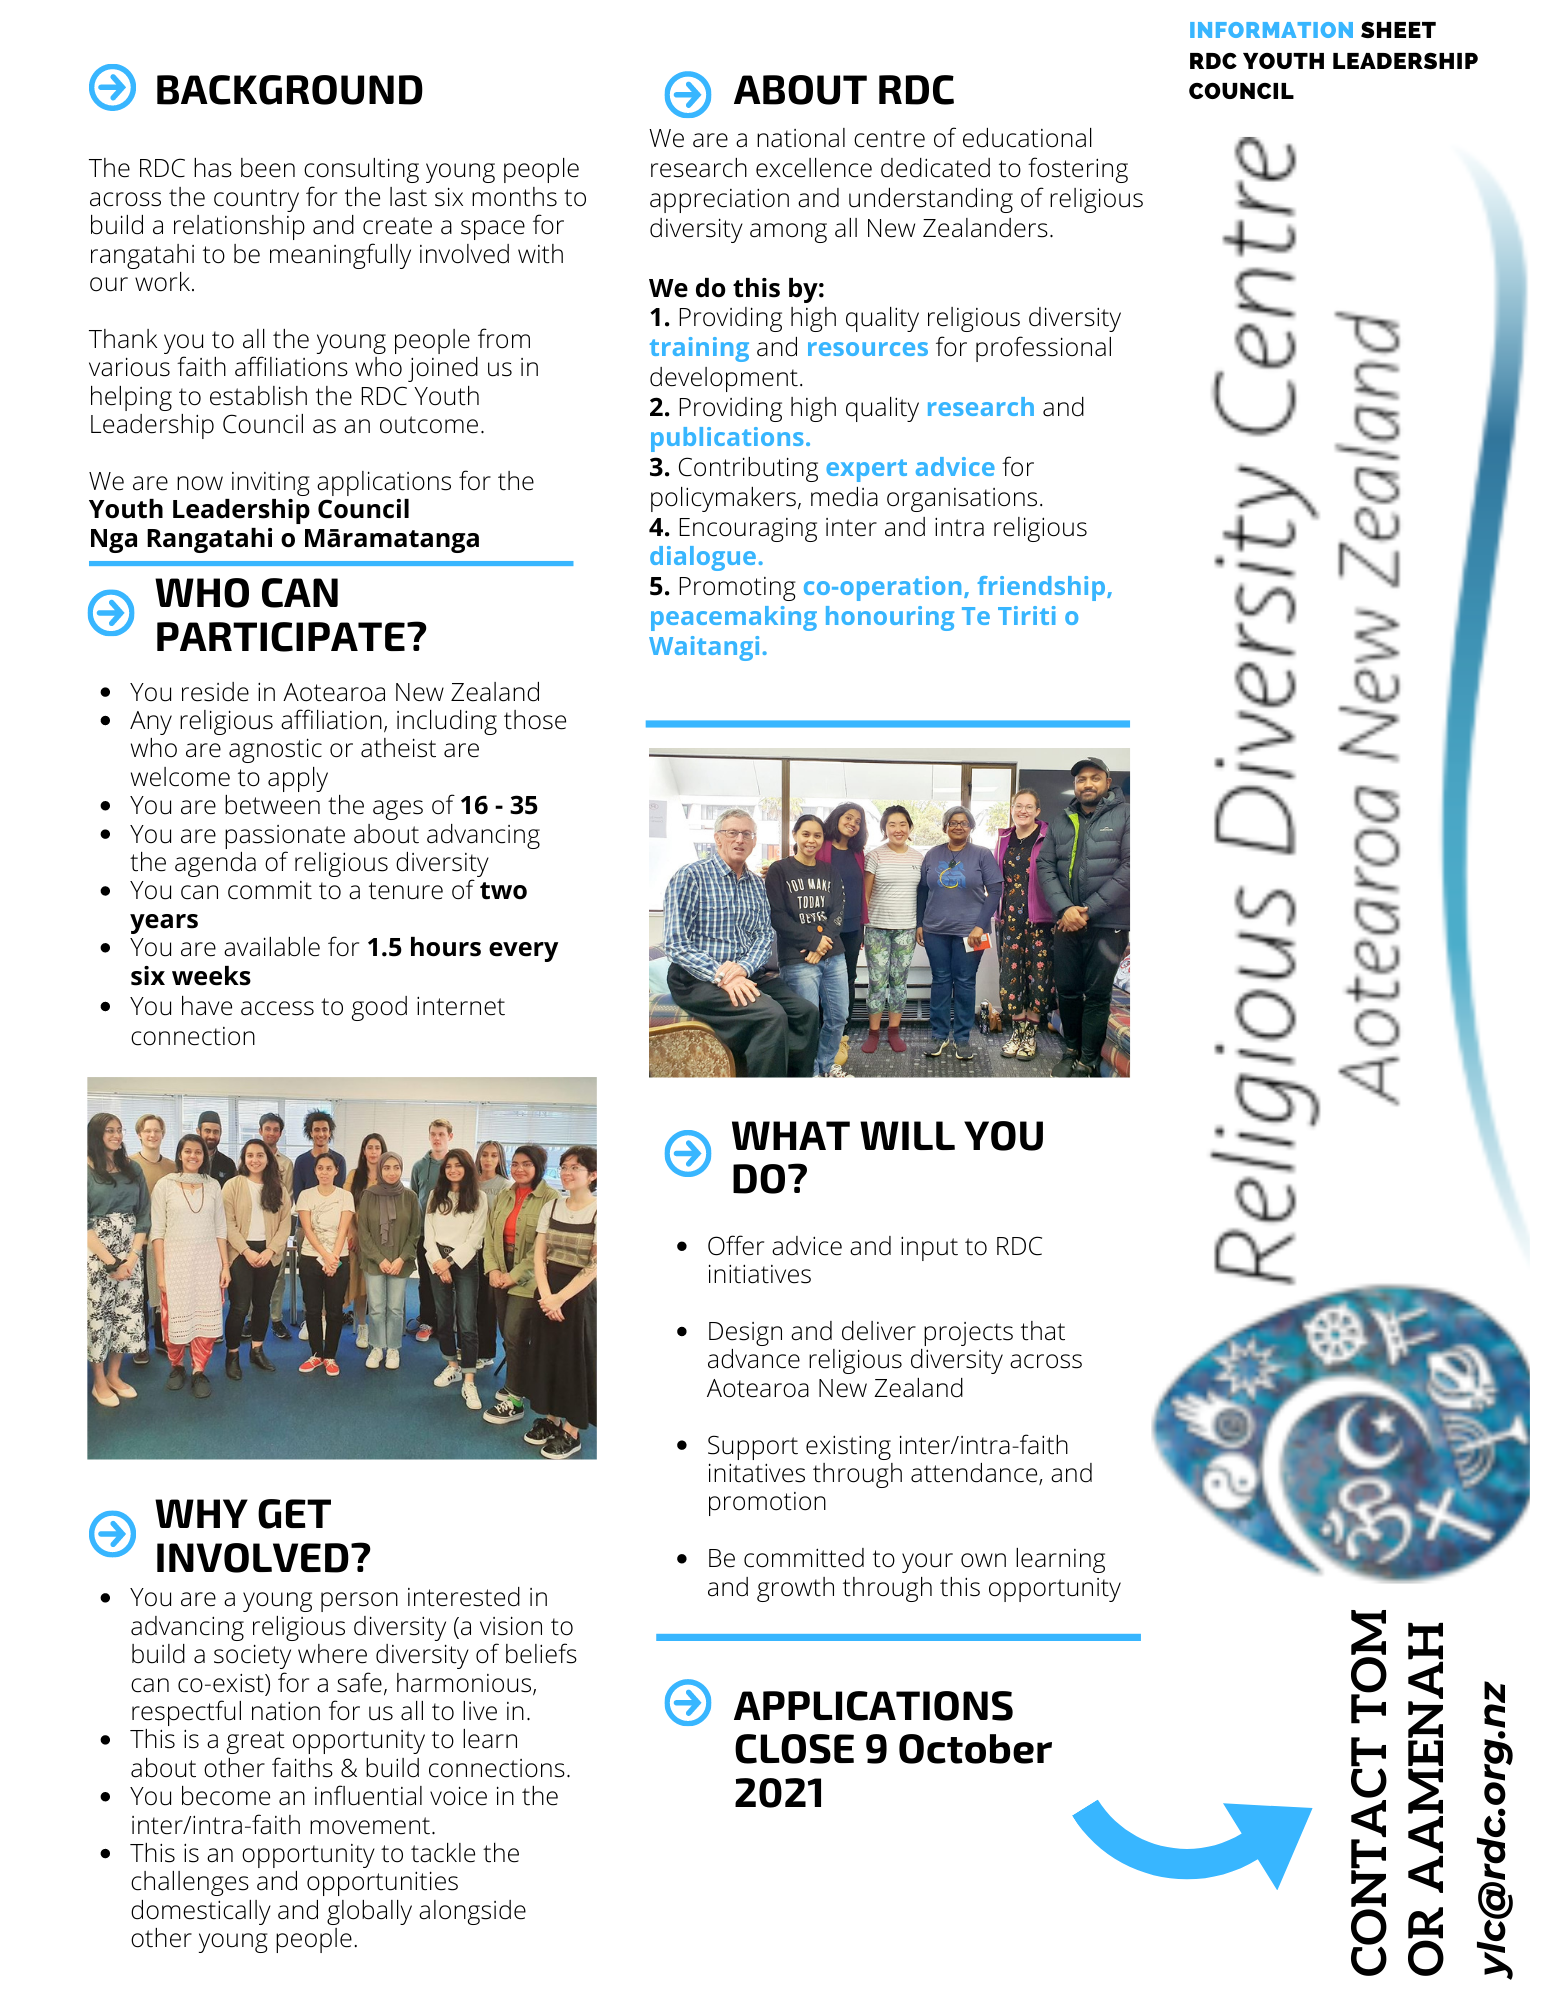 Youth Leadership Council – Application